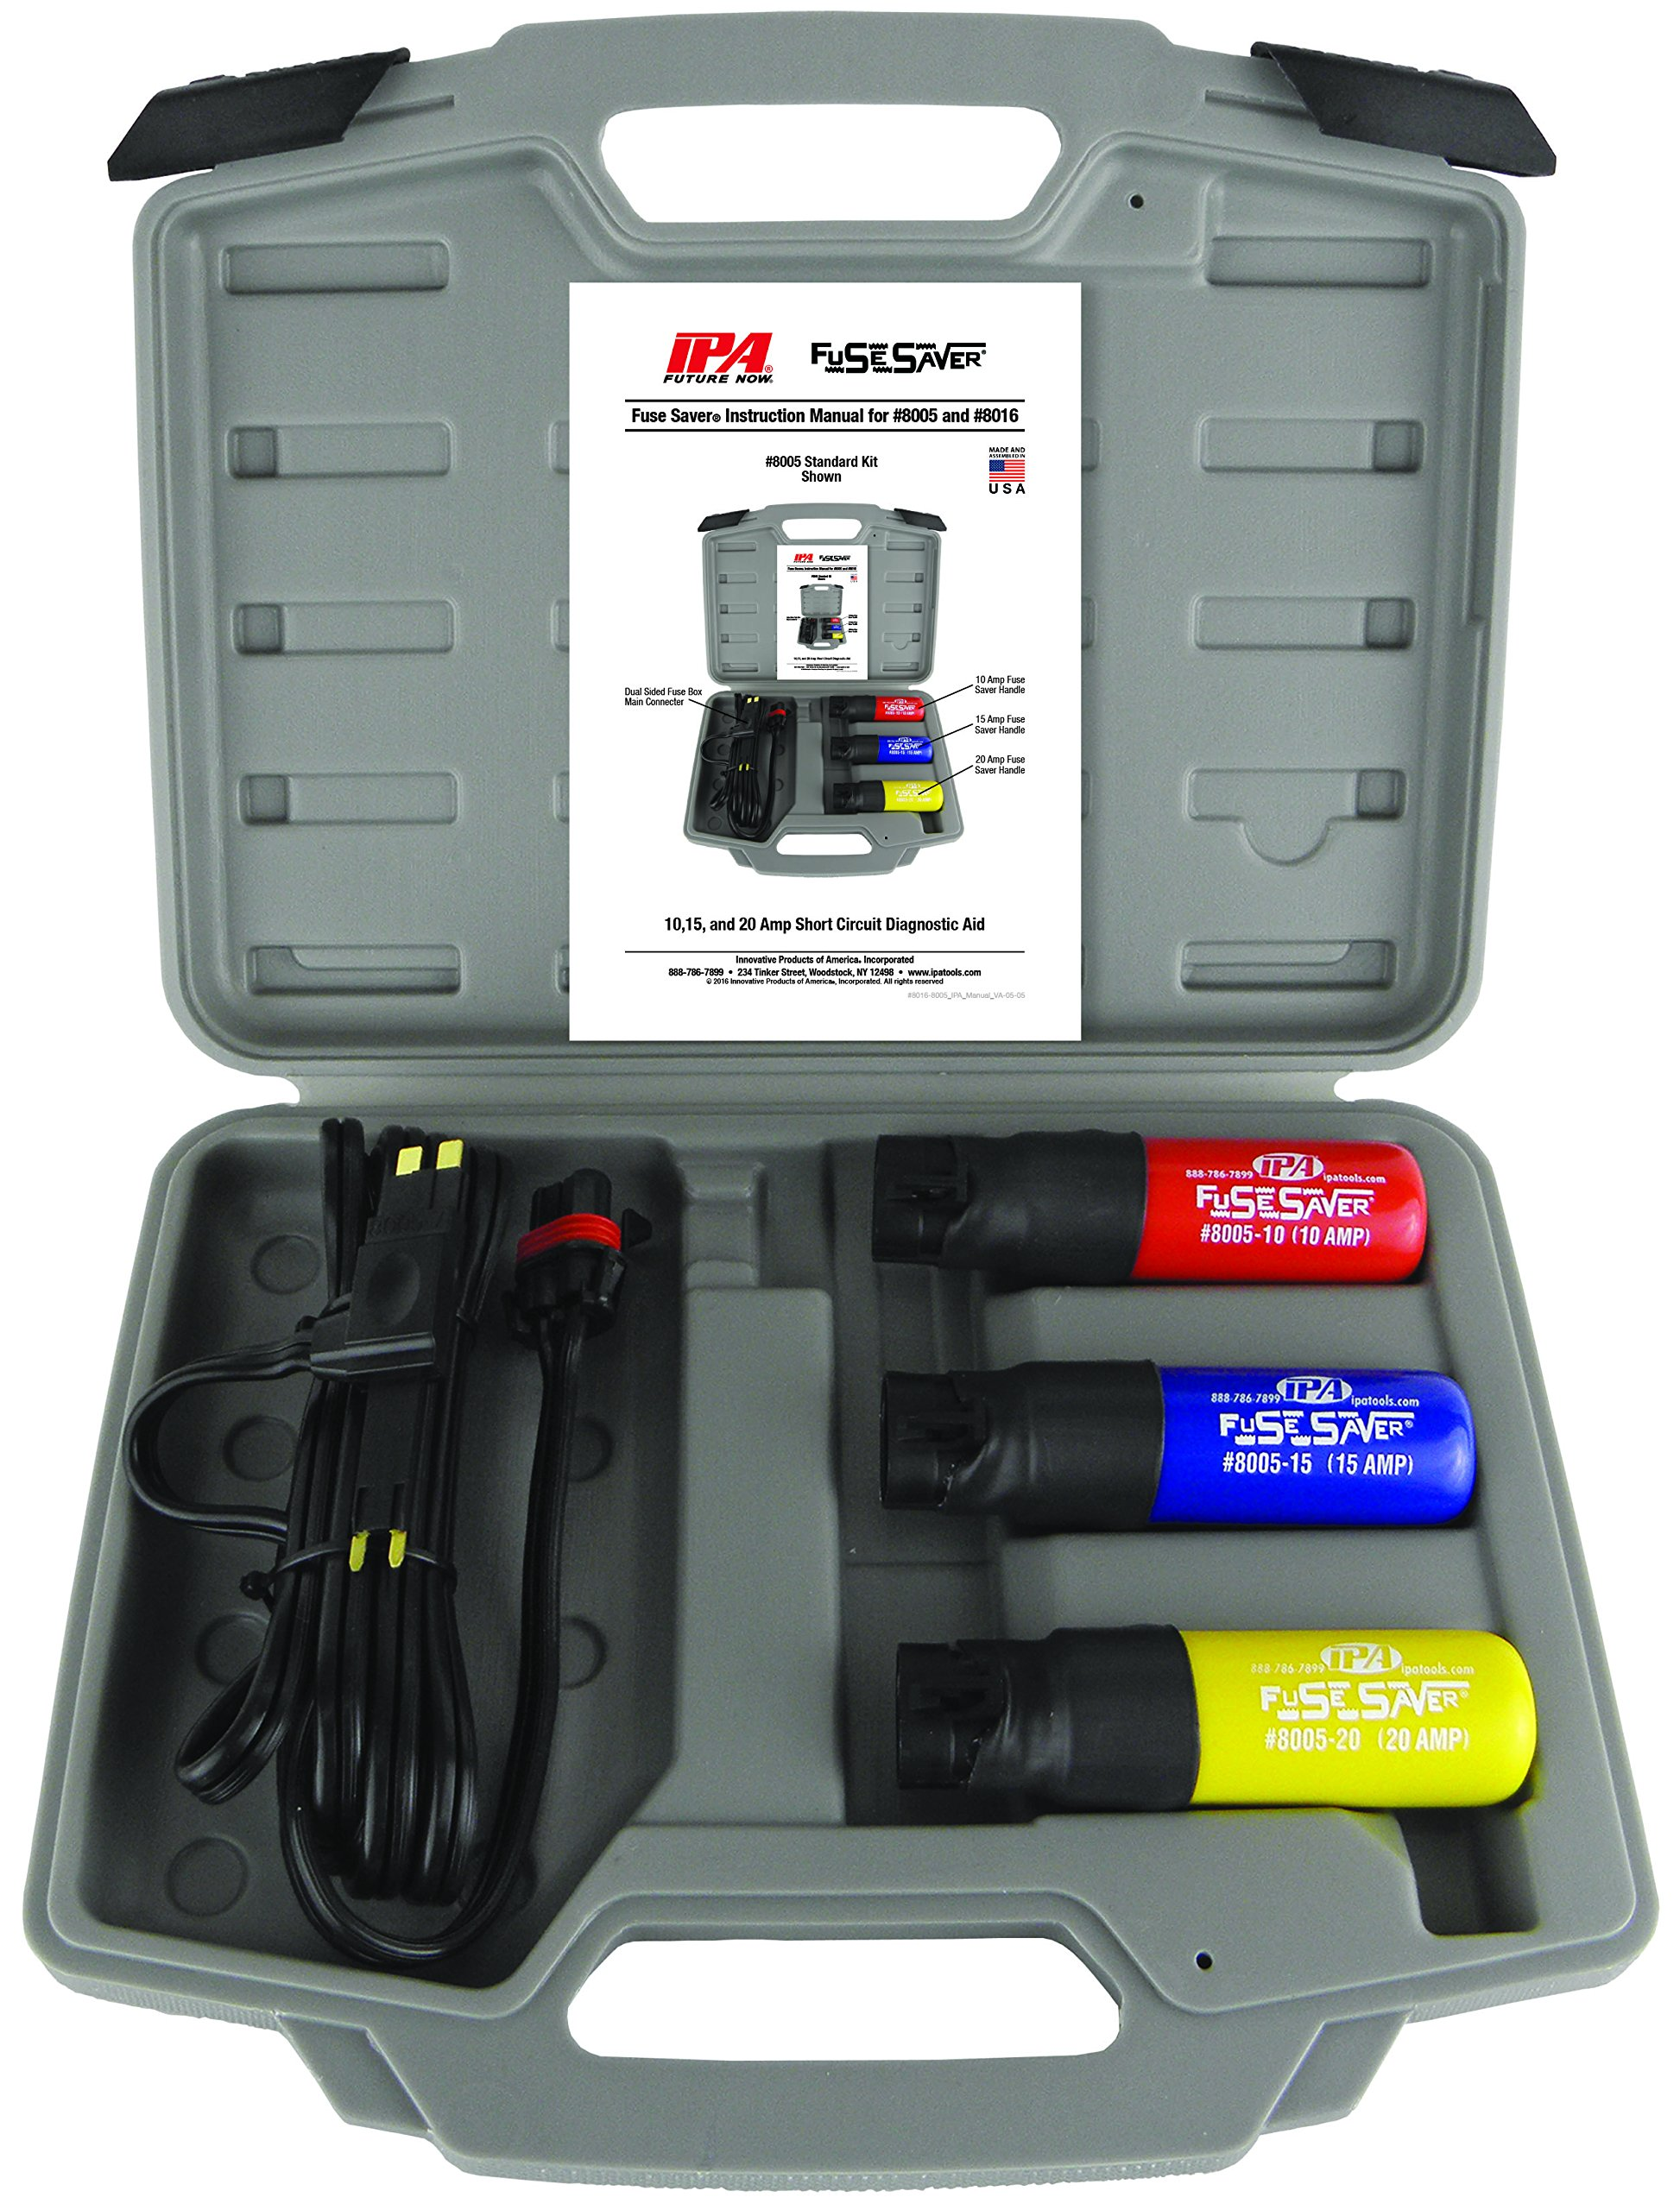 Innovative Products Of America 8005 Fuse Saver